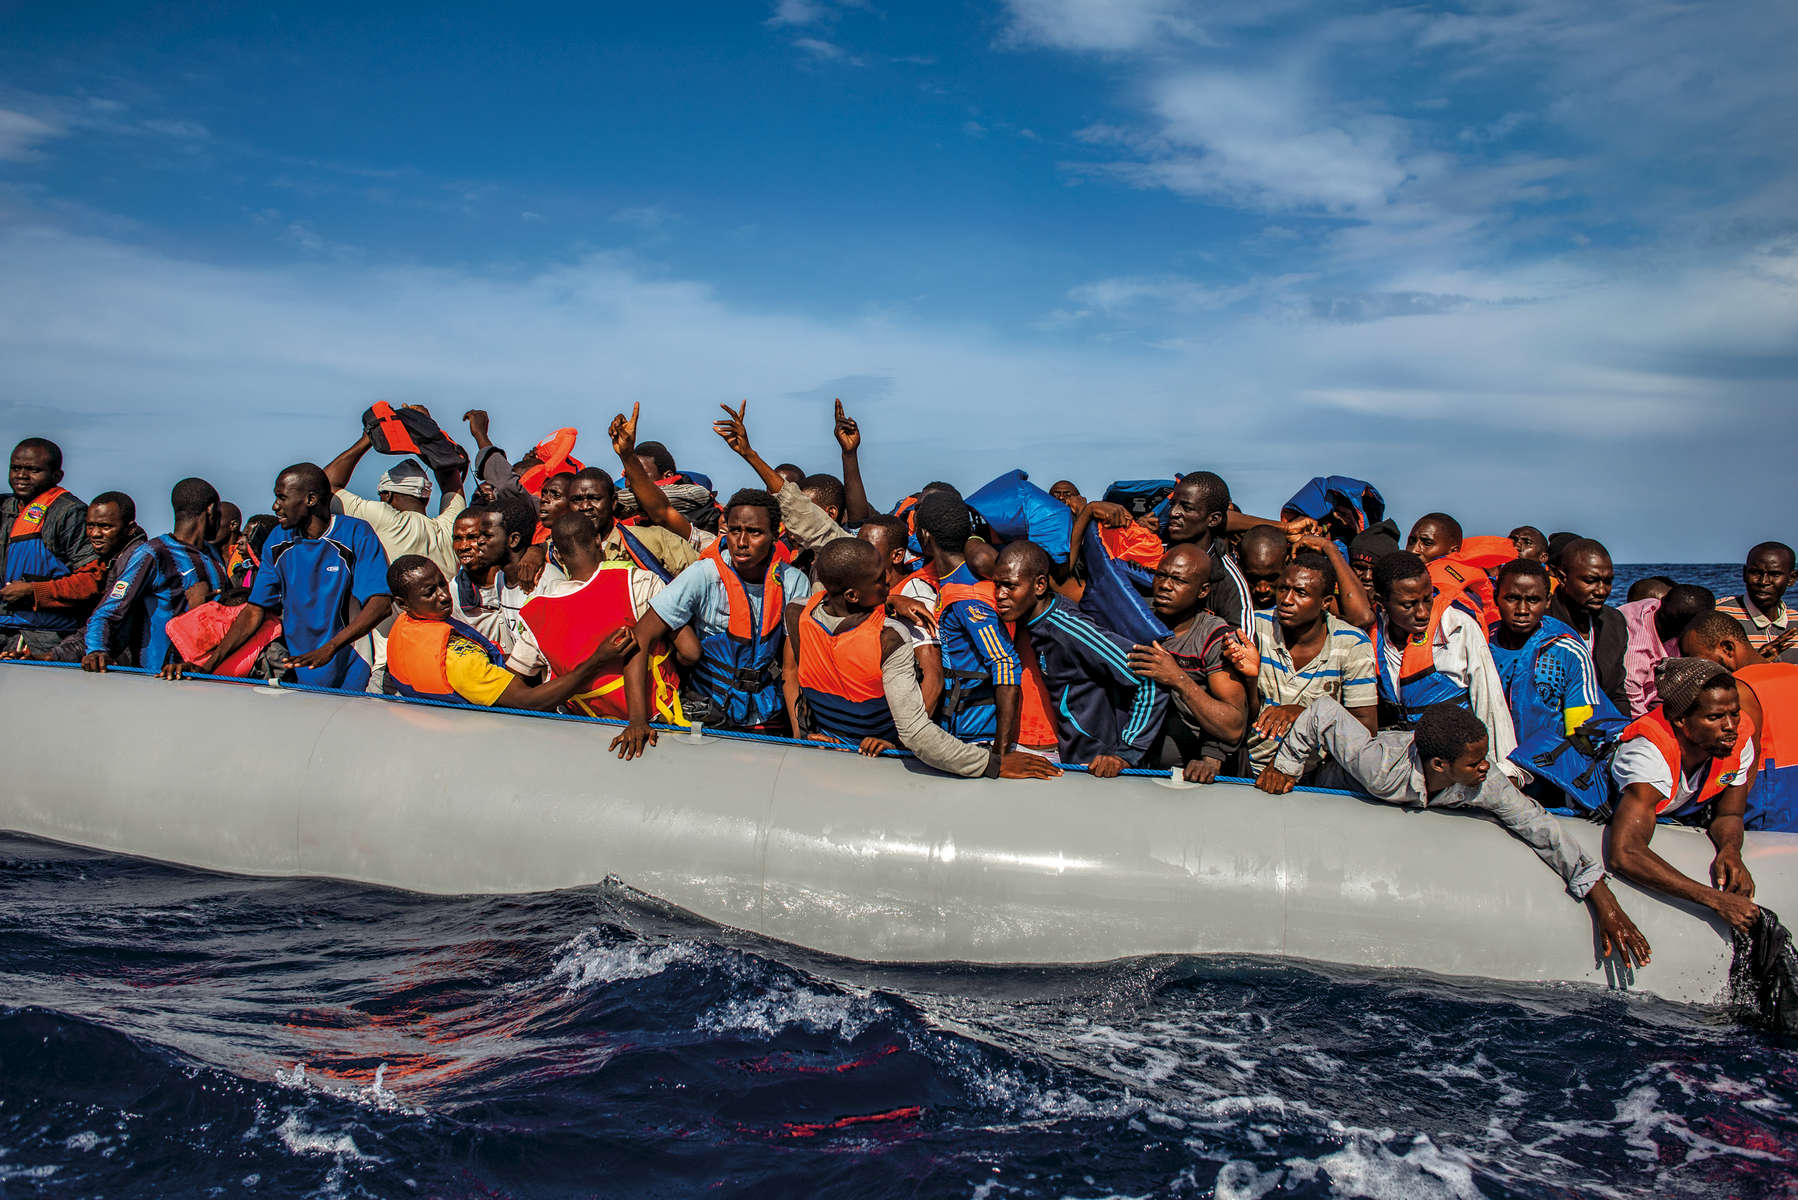 One hundred nine African refugees from Gambia, Mali, Senegal, Ivory Coast, Guinea,and Nigeria are rescued by the Italian navy from a rubber boat in the sea between Italyand Libya, October 2014.